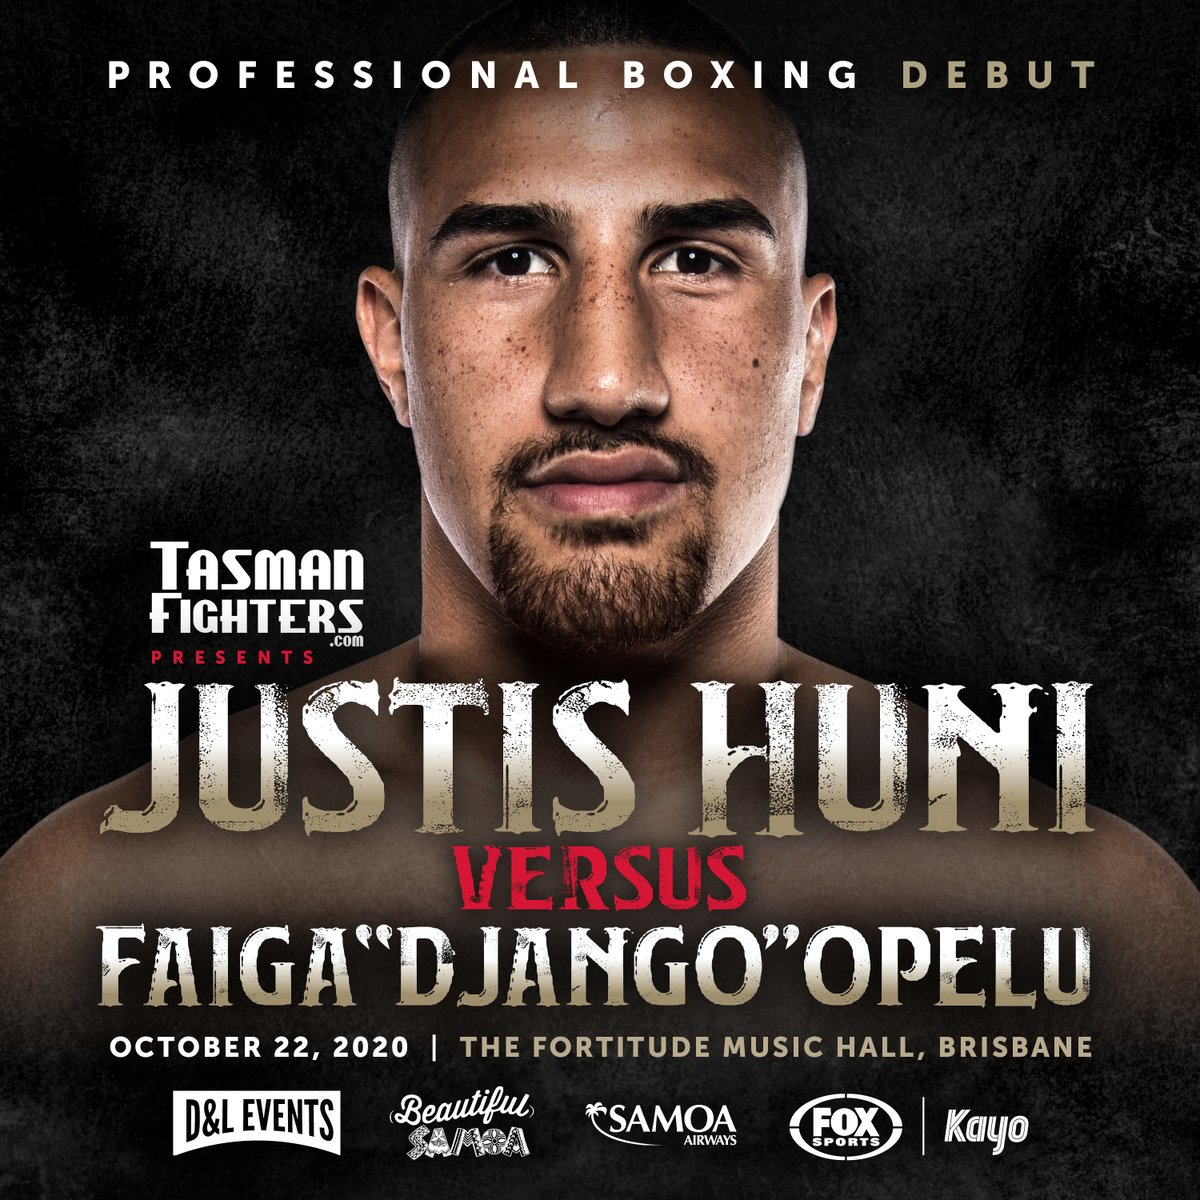 🥊 Amateur superstar Justis Huni will make his professional boxing debut against reigning Australian Heavyweight Champion 'Django' Opelu LIVE on Fox Sports 505 on Thursday, October 22.   In the main bout world-ranked cruiserweight Jai Opetaia rematches Ben Kelleher. https://t.co/oKgKWMDlnA